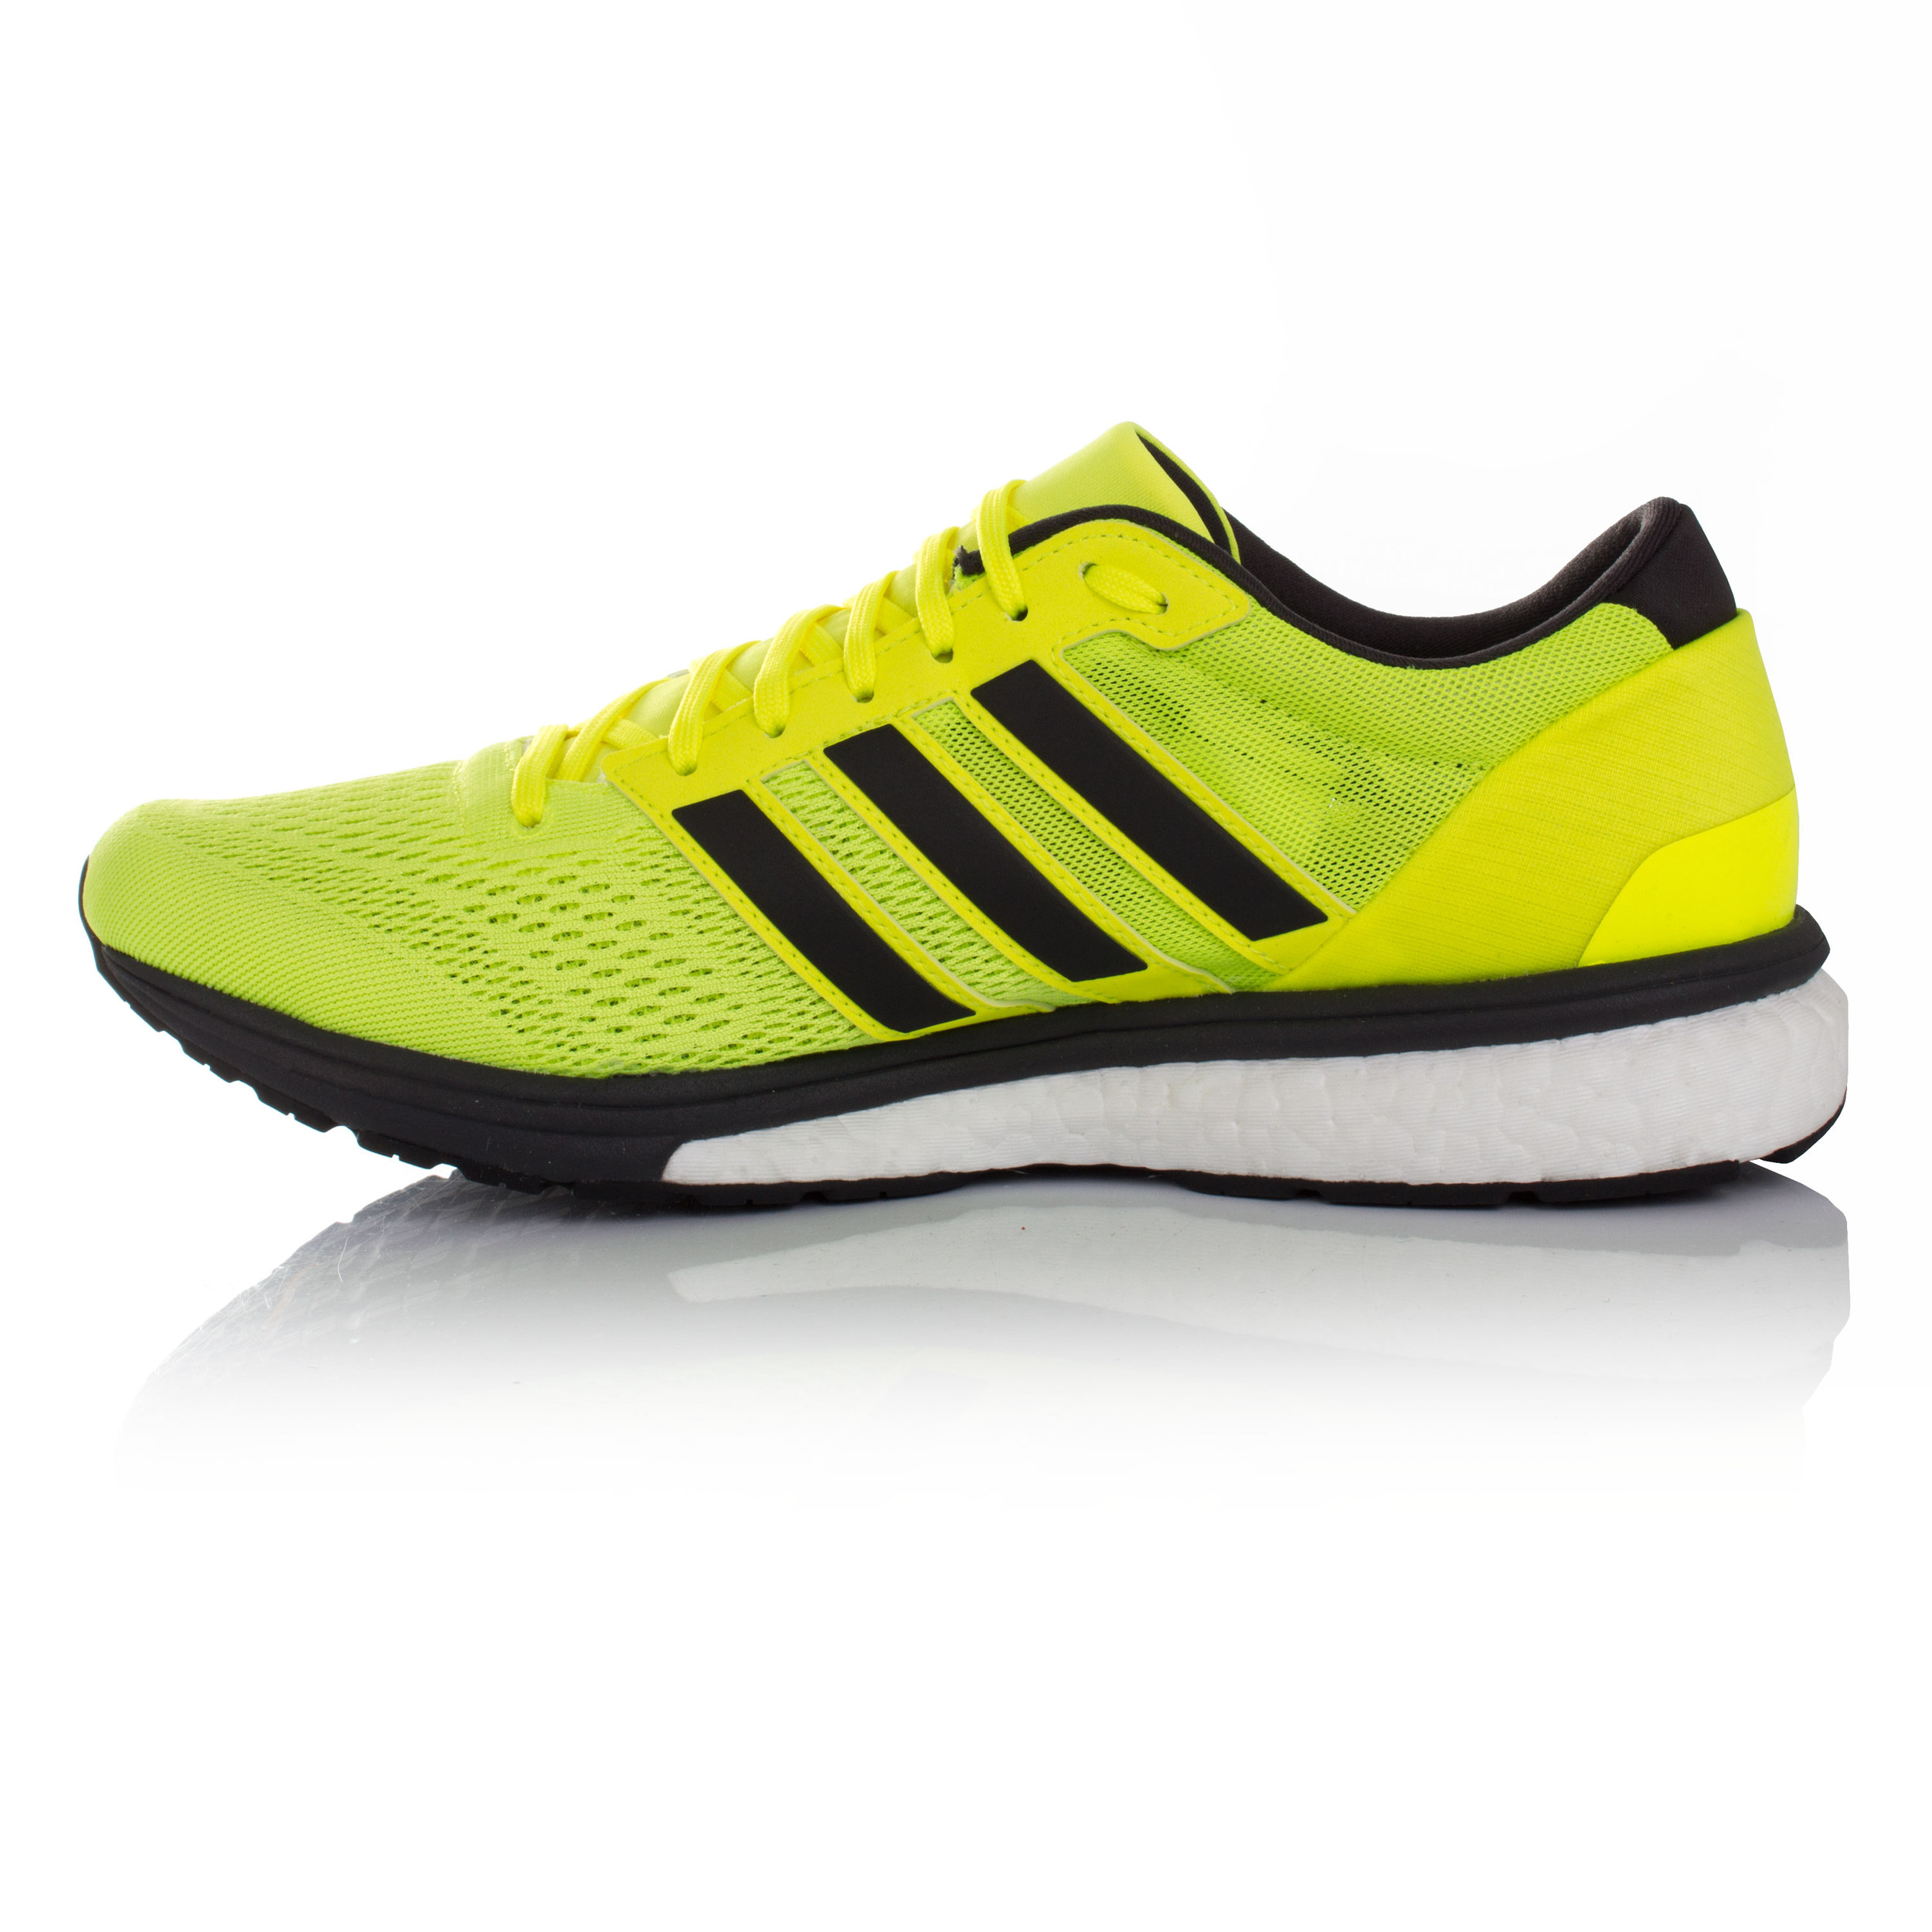 Adidas Running Shoes Men Yellow